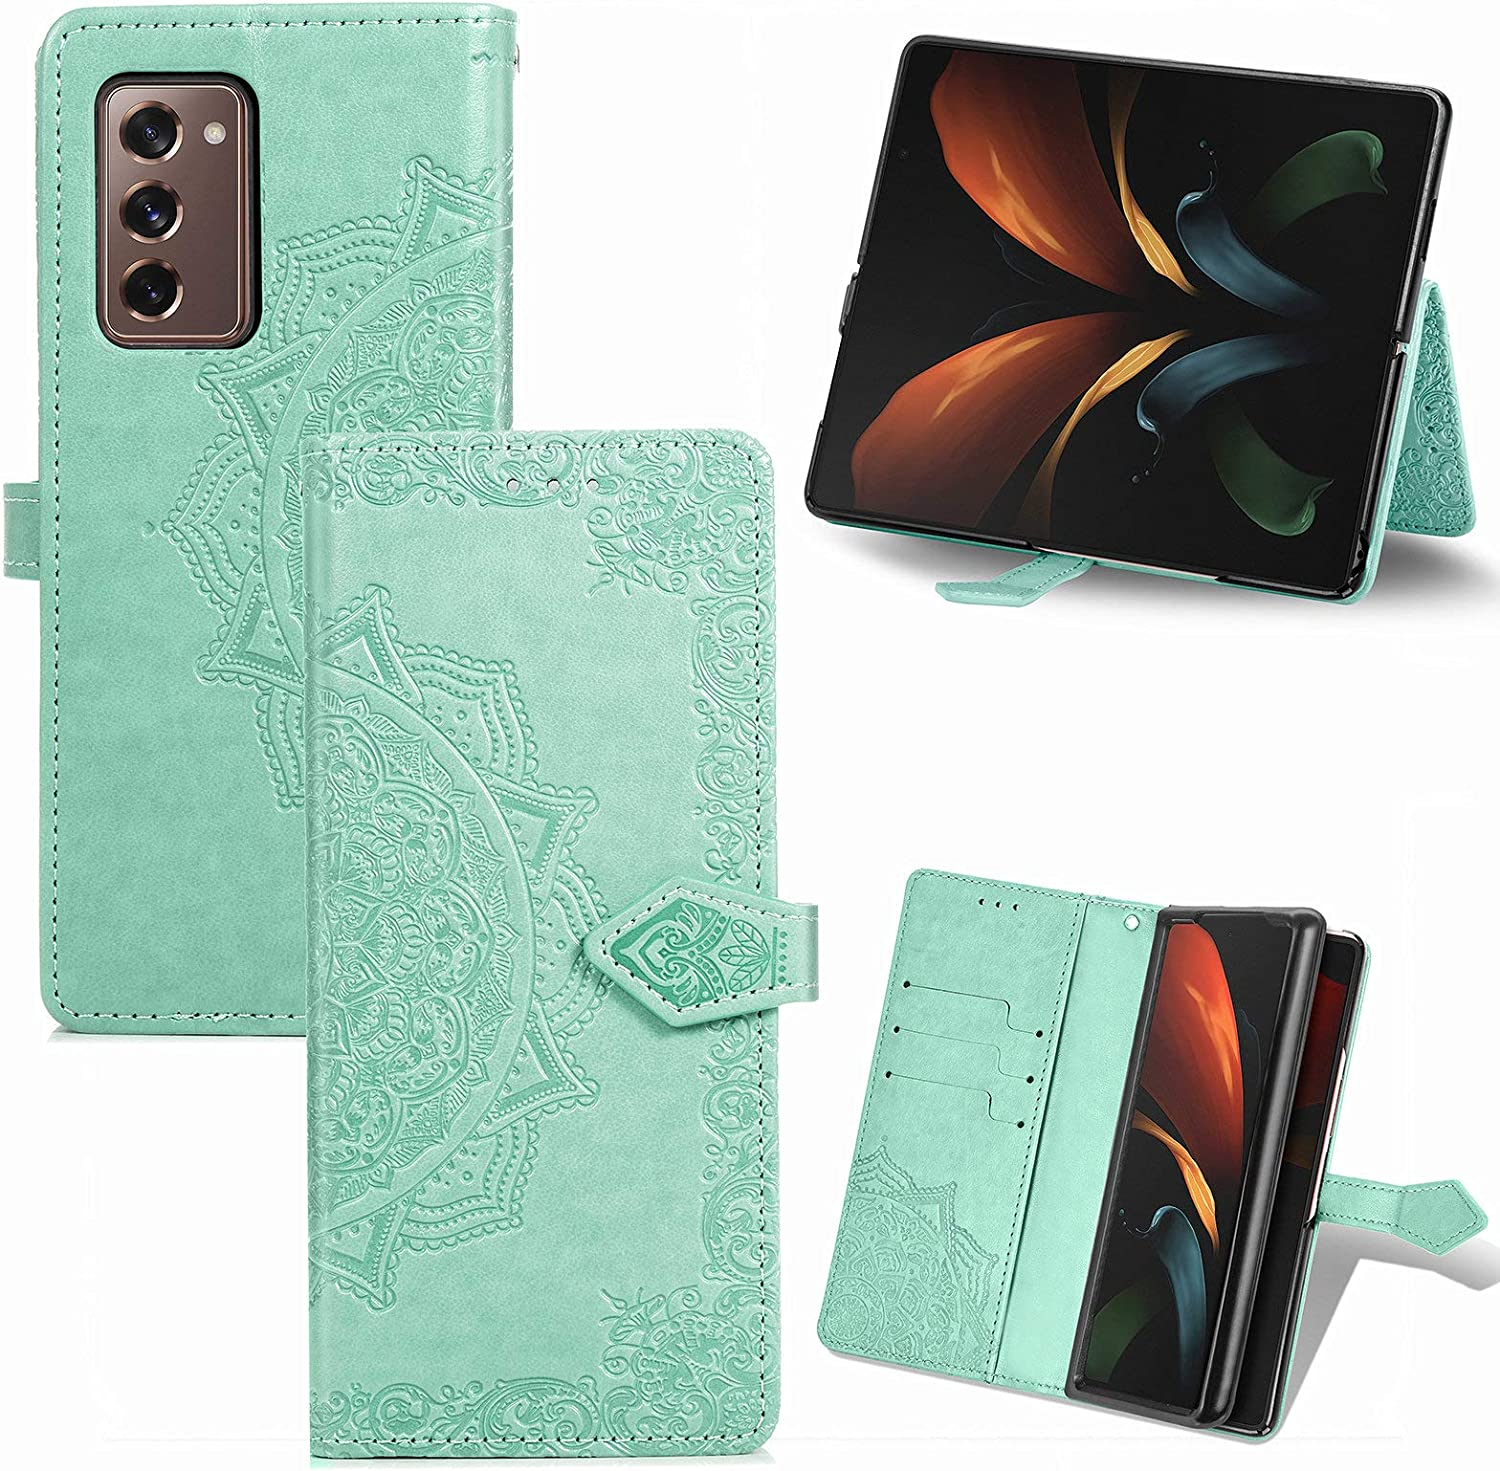 Samsung Galaxy Z Fold 2 5G Cases,Galaxy Z Fold 2 Flip Case for Girl Woman,Emboss Floral Mandala Flowers Leather Wallet Case Kickstand Flip Cover Card Holder for Samsung Galaxy Z Fold 2 5G Mint